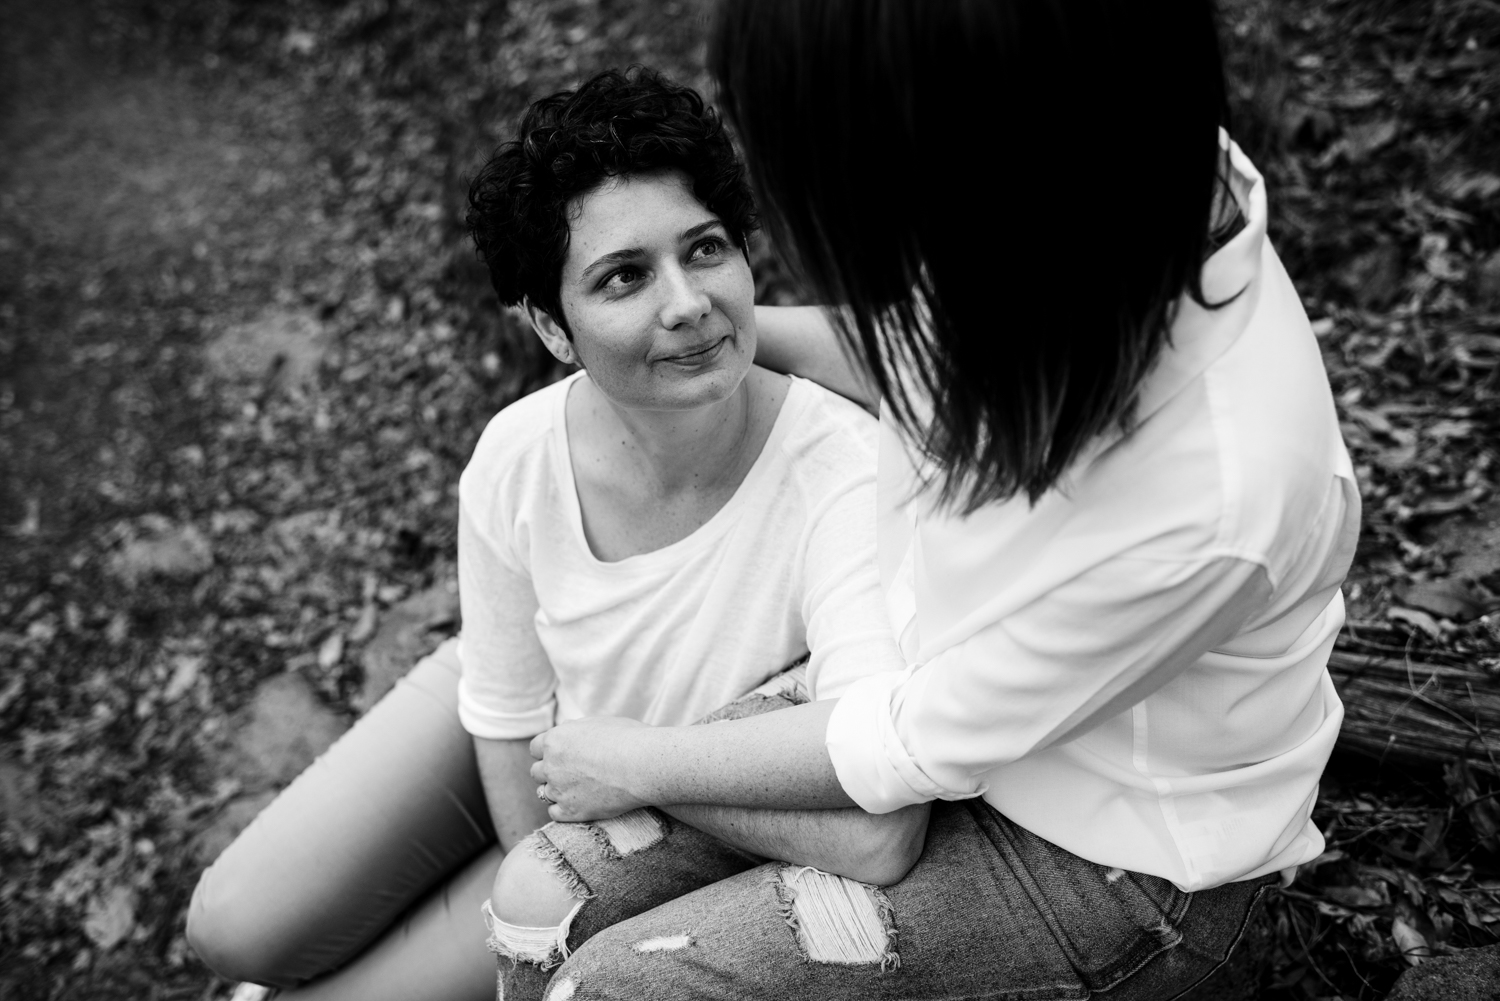 Brisbane Lesbian Wedding Photographer | Same-Sex Engagement-Elopement Photography-5.jpg